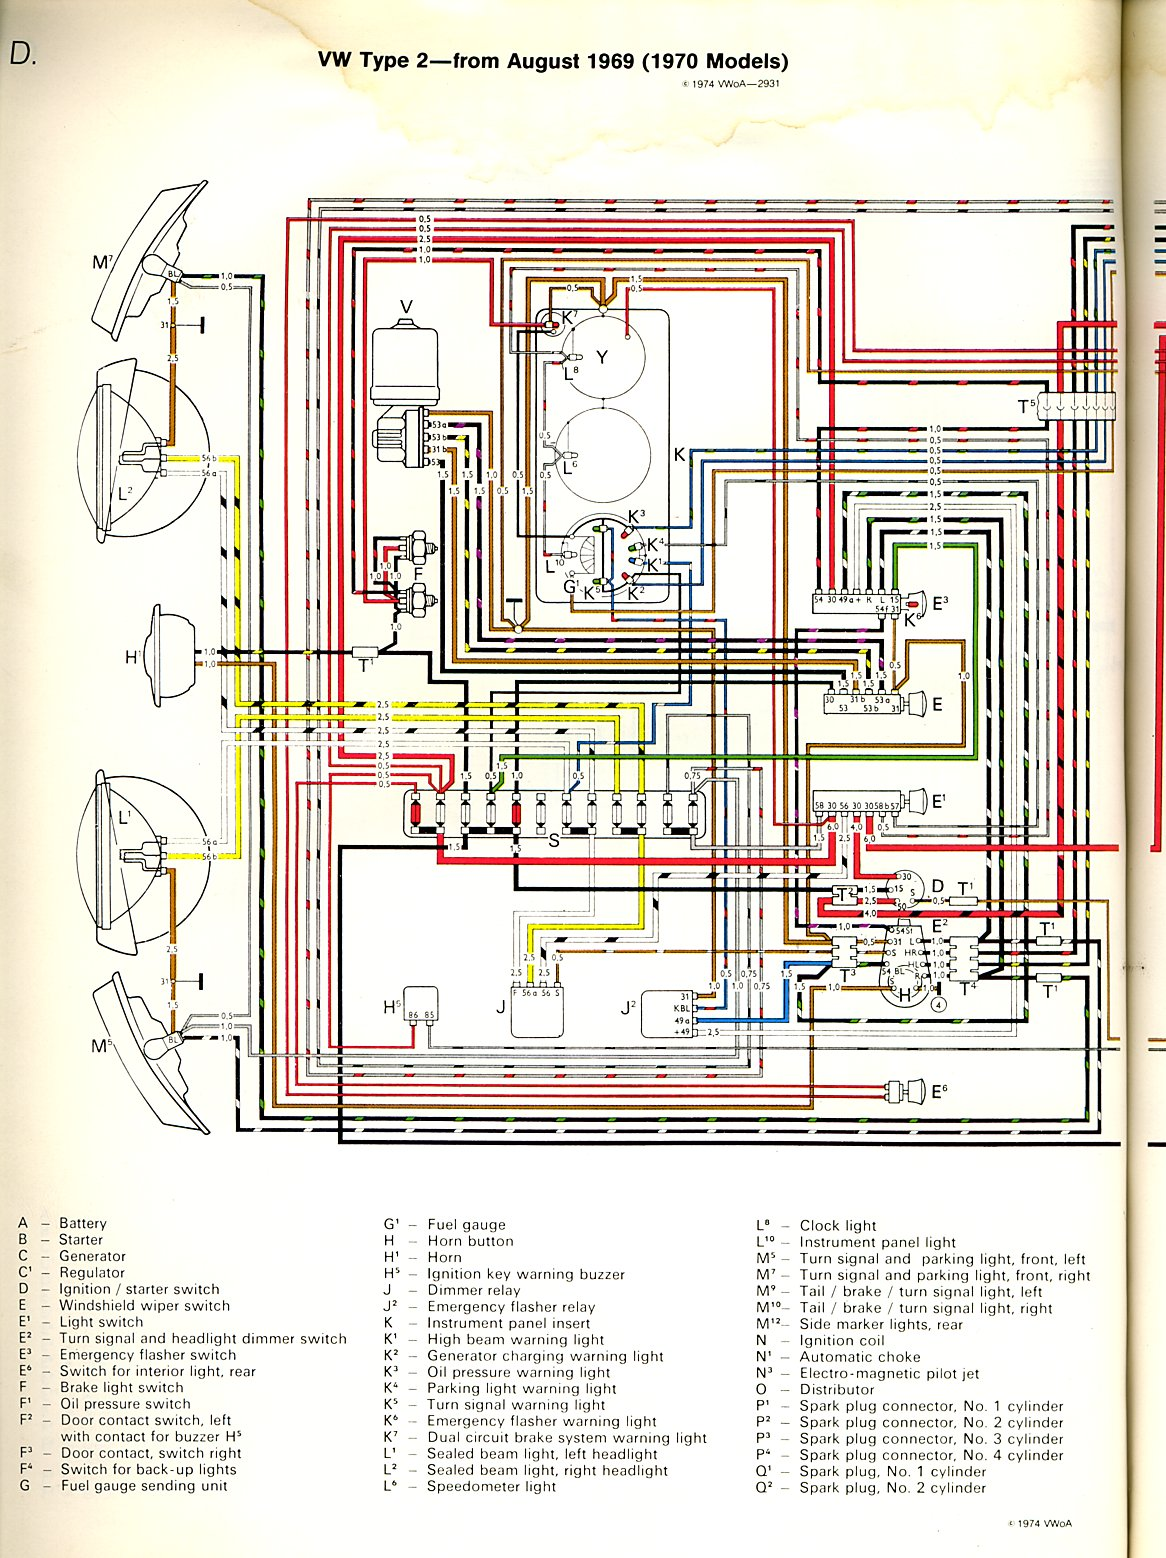 77 Vw Wiring Diagram Guide And Troubleshooting Of Beetle Light Thesamba Com Type 2 Diagrams Rh Electrical 1970